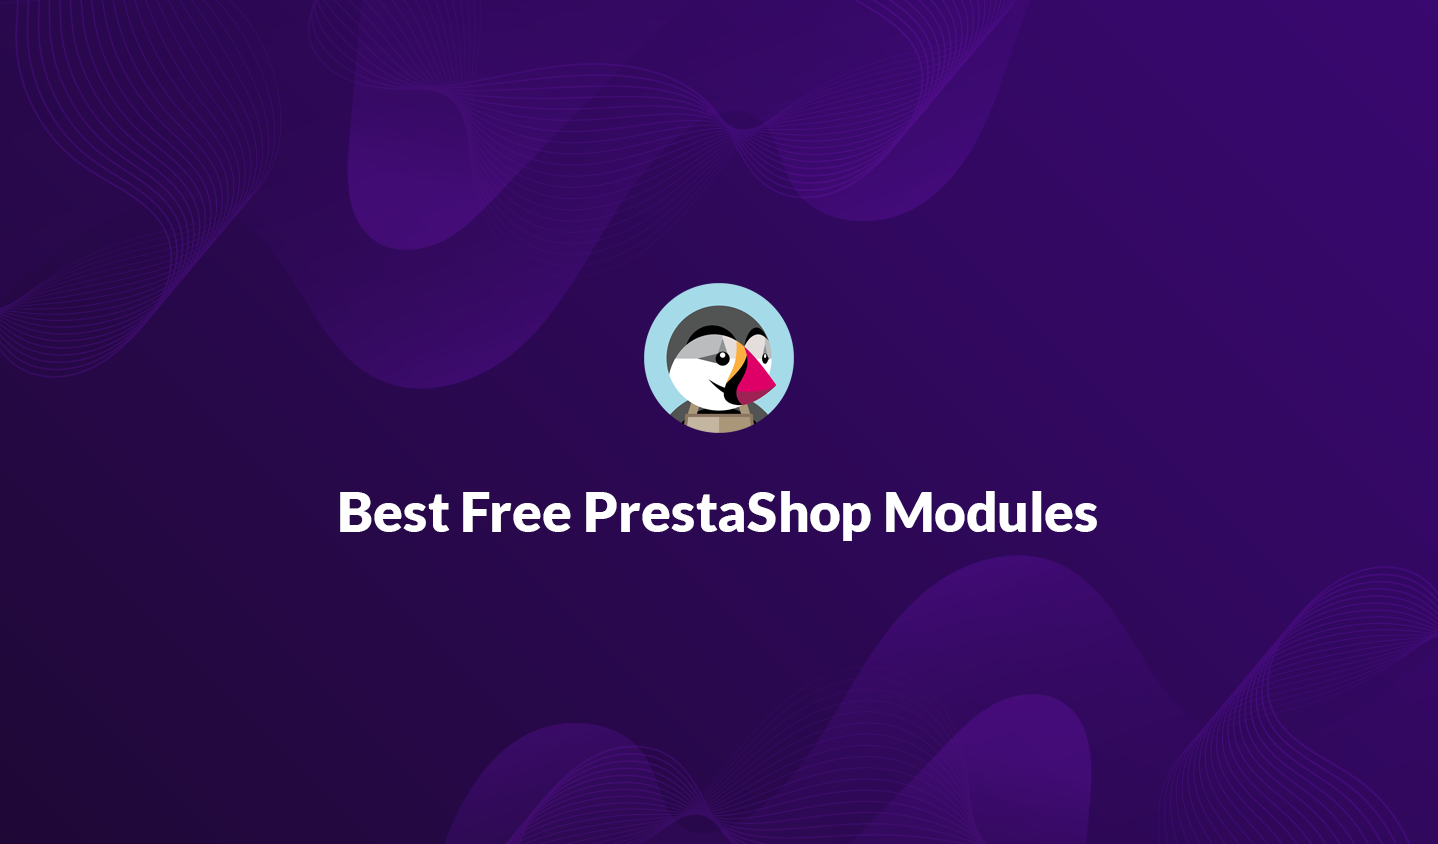 10+ Best Free PrestaShop Modules 2020